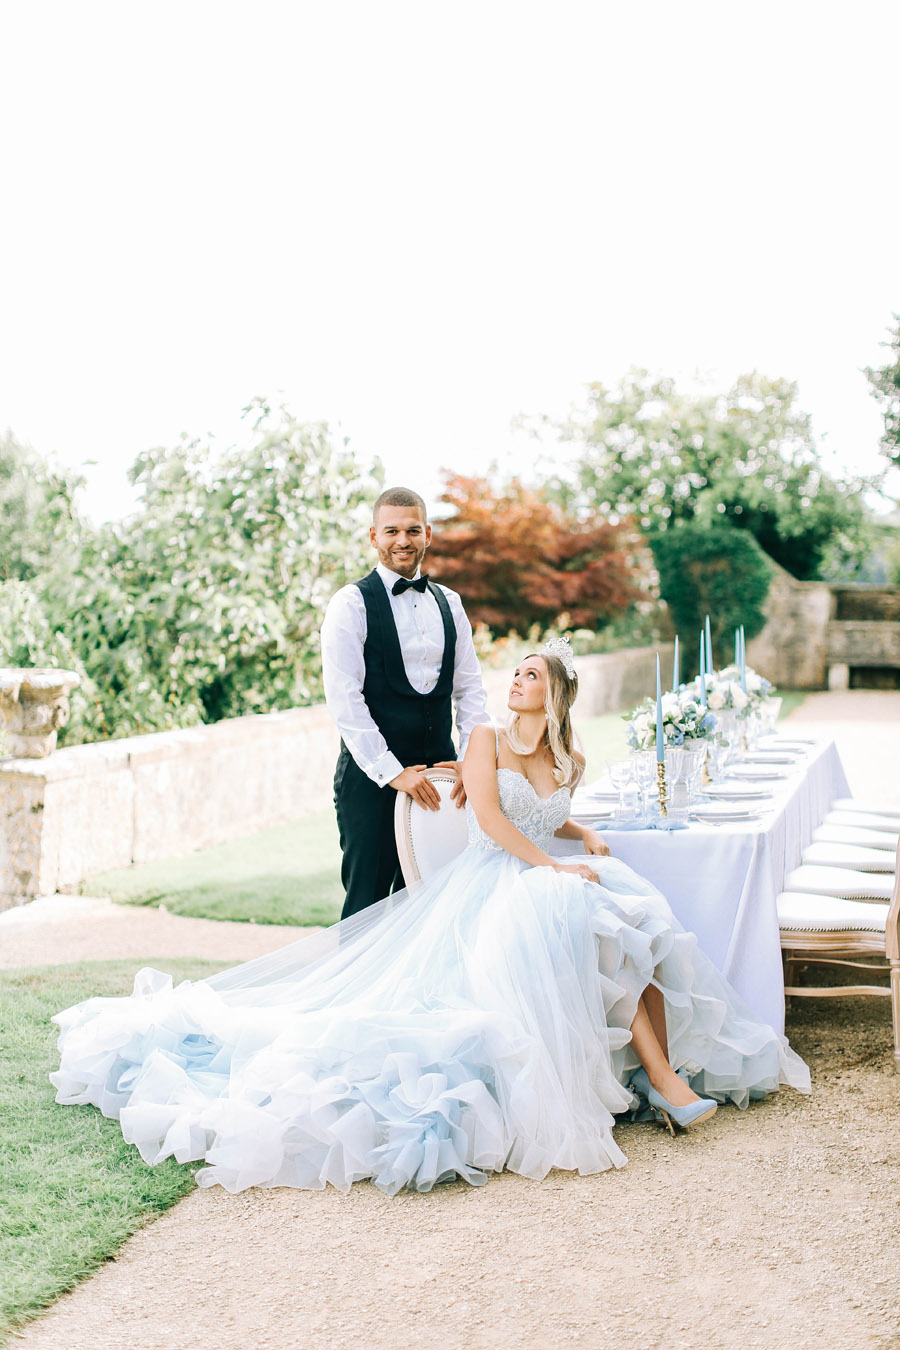 Enchanted Fairytale inspired shoot at Hamswell House, photography credit Charlotte Wise, wedding planner Lucy Ann Reid (26)